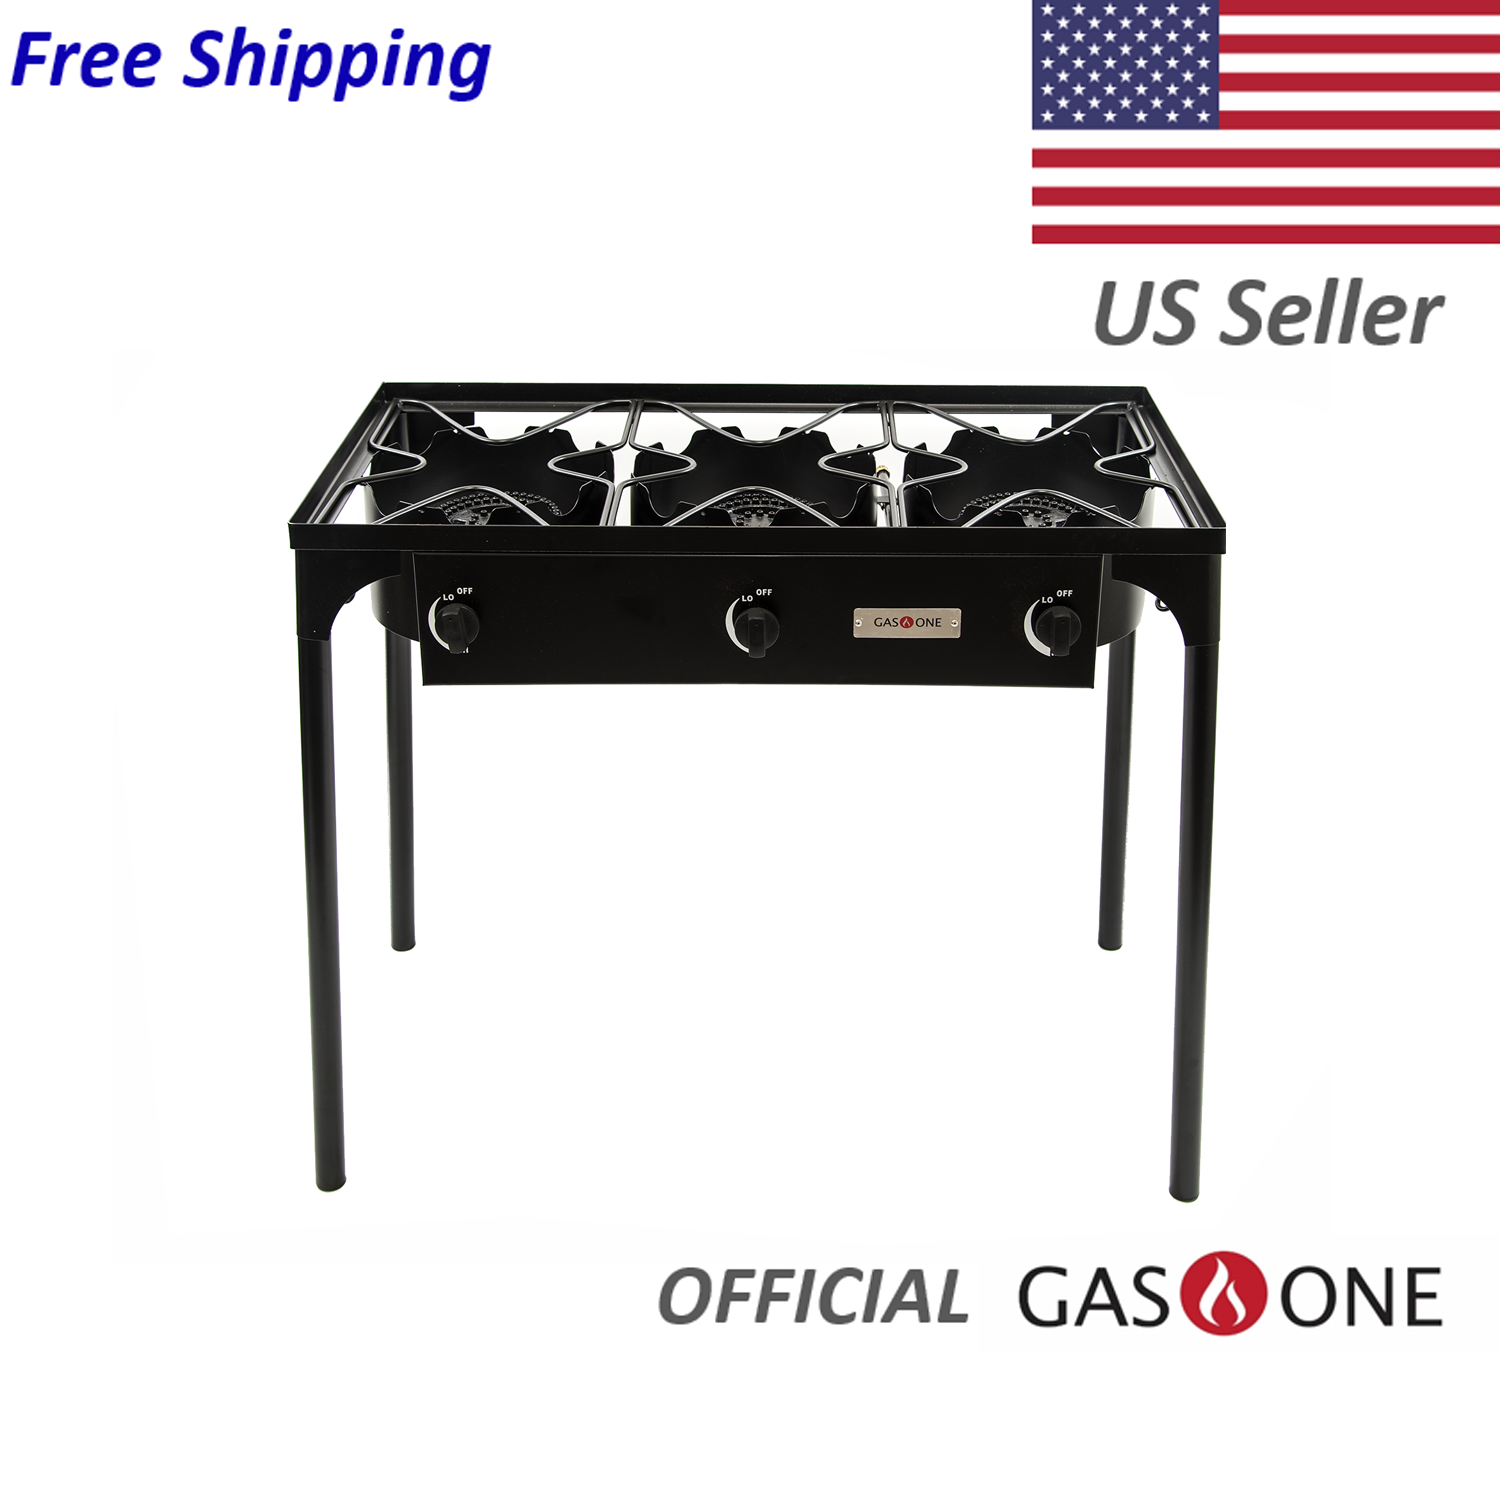 Gas One Triple Burner Gas Propane Cooker Outdoor Camp Stove,